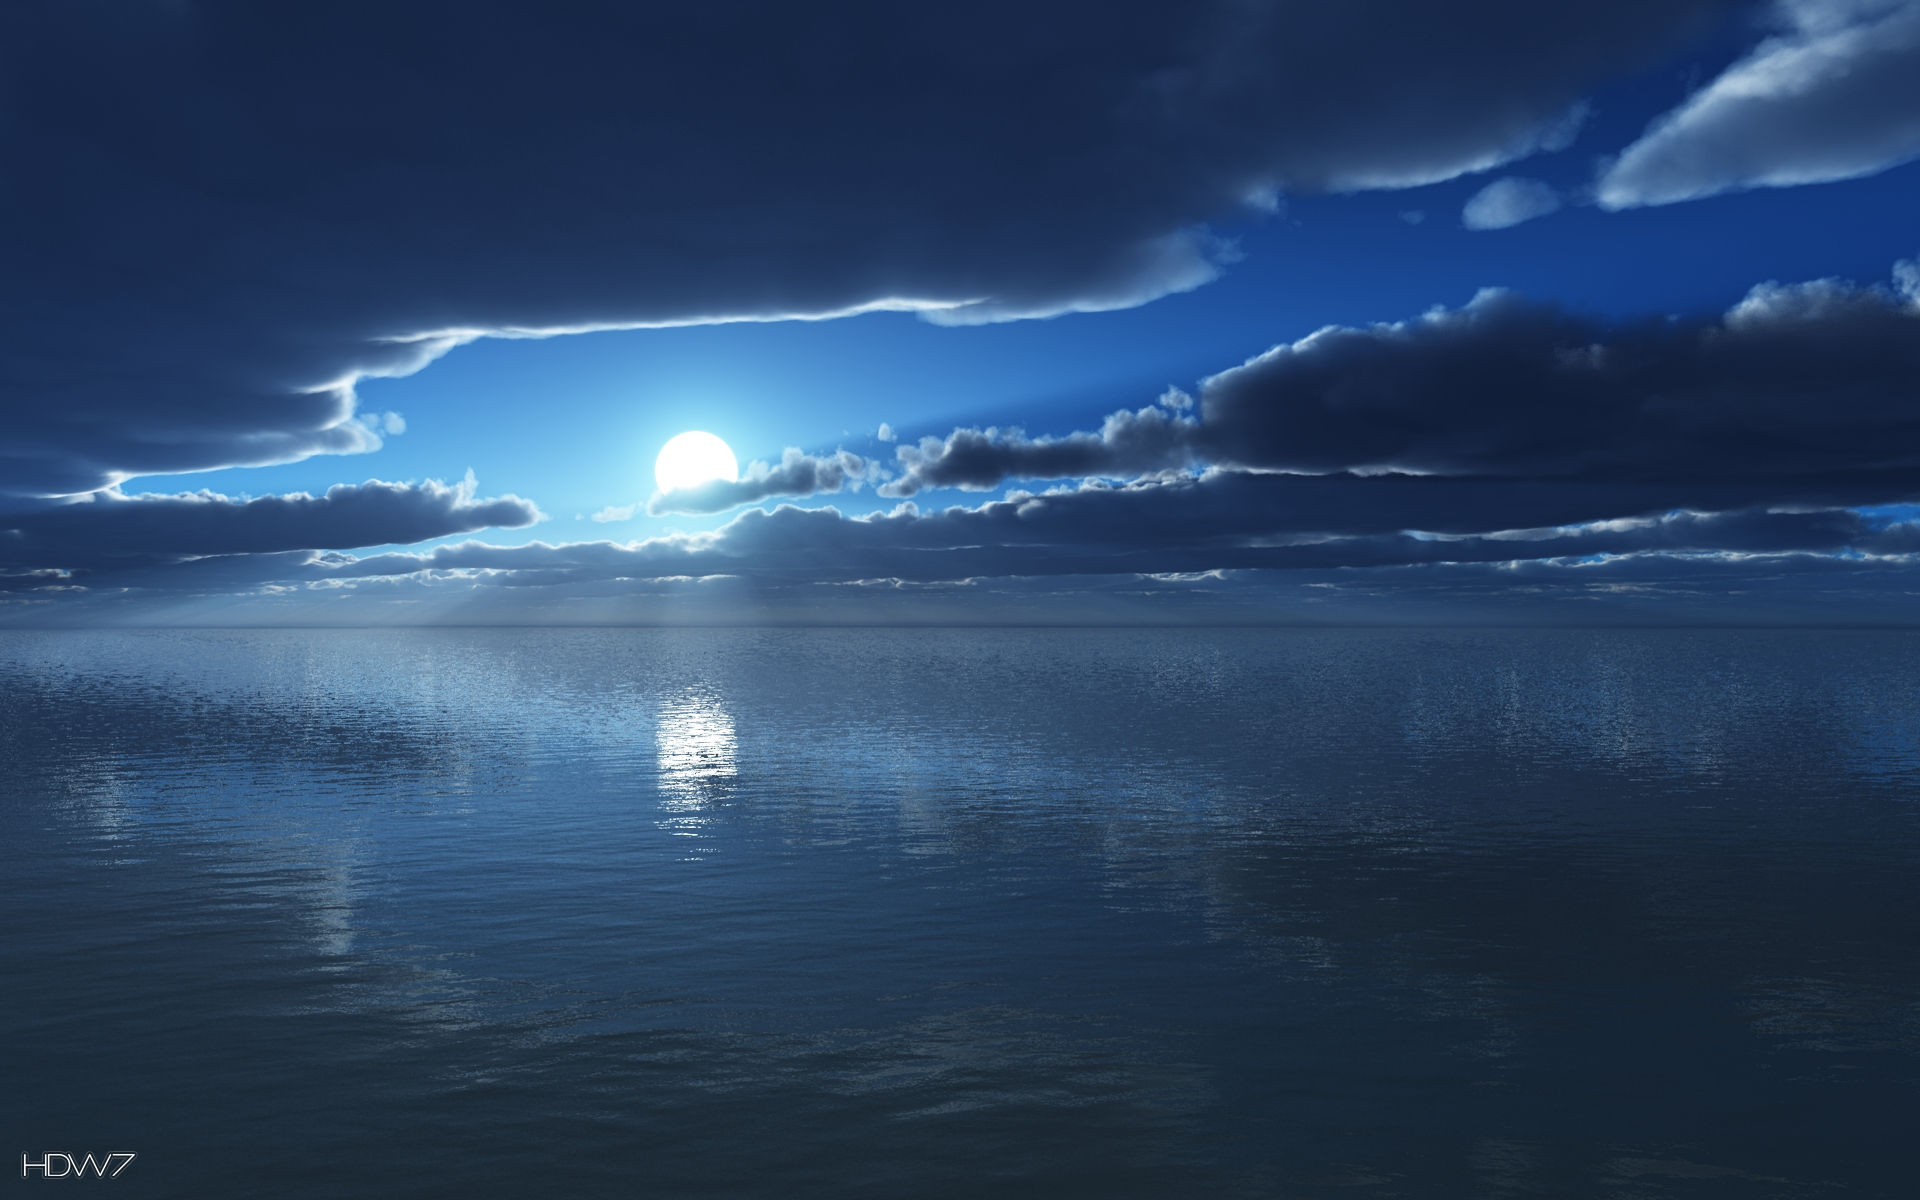 Shiny Moon In A Cloudy Night Over The Sea Wallpaper